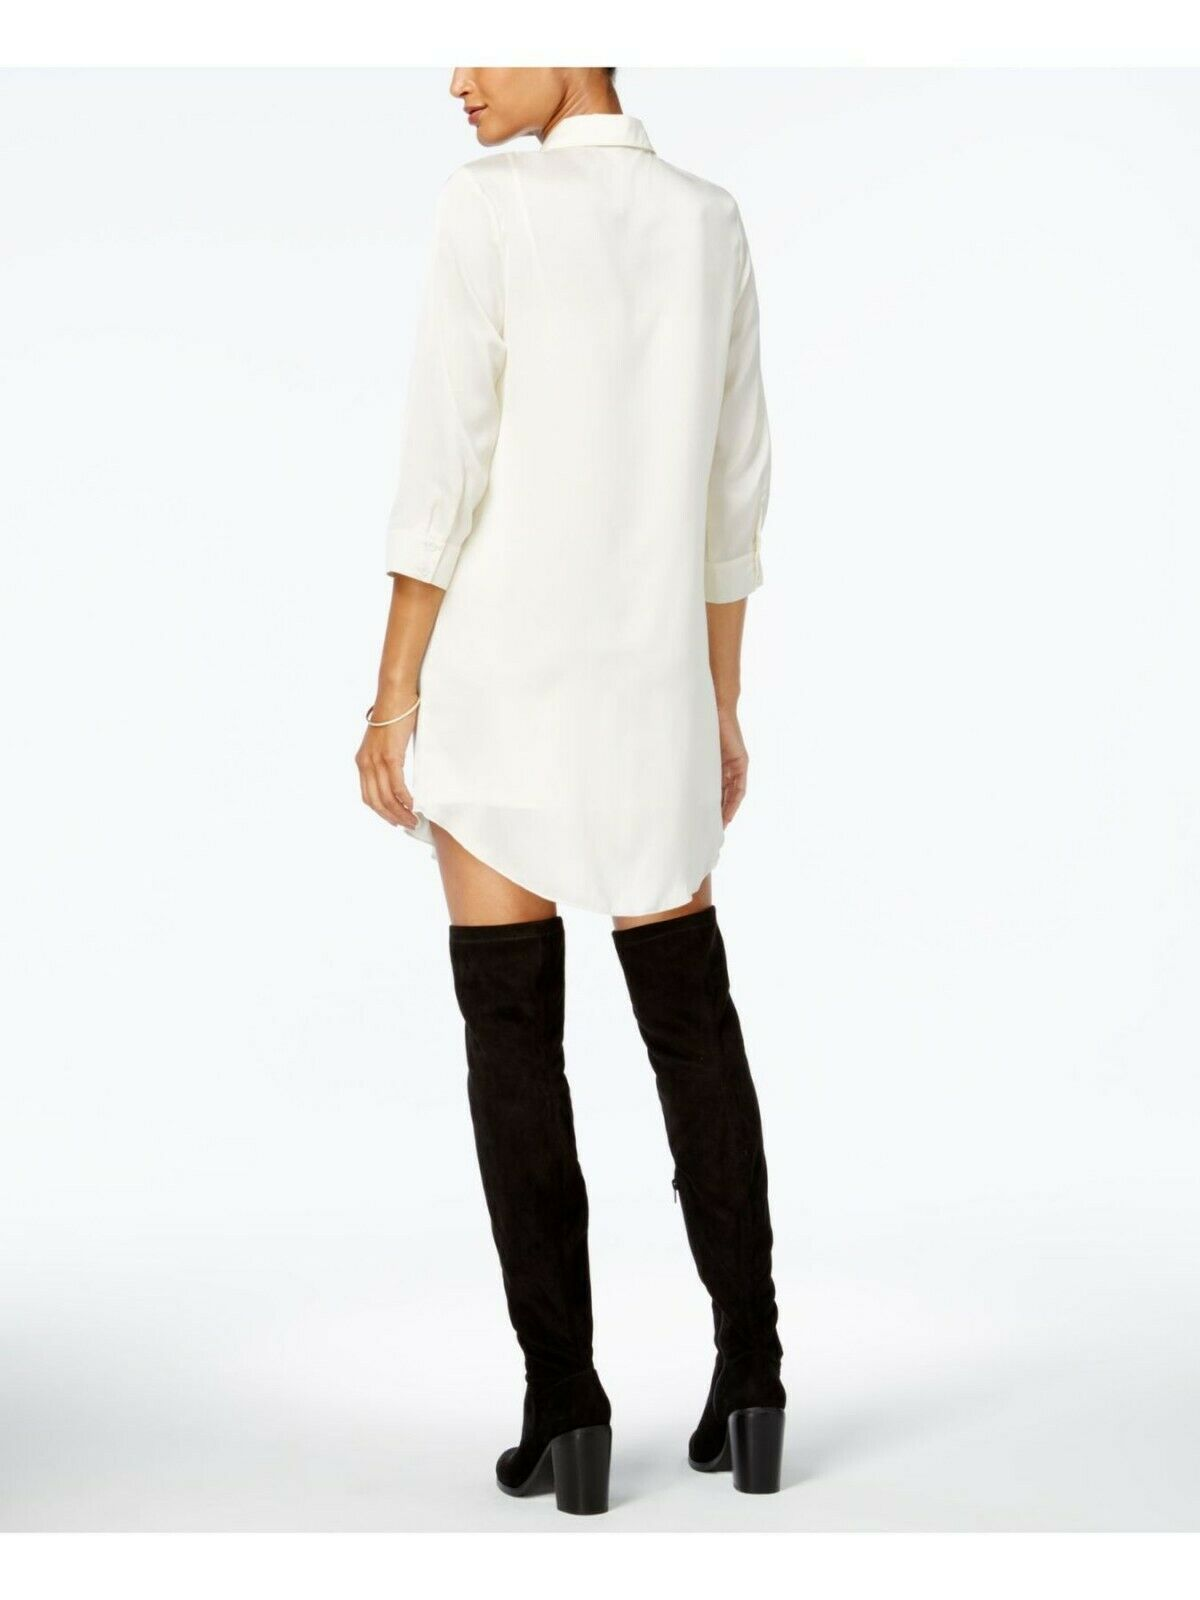 Primary image for Kensie Ivory 3/4 Sleeve Collared Mini Shirt Dress - Size XS